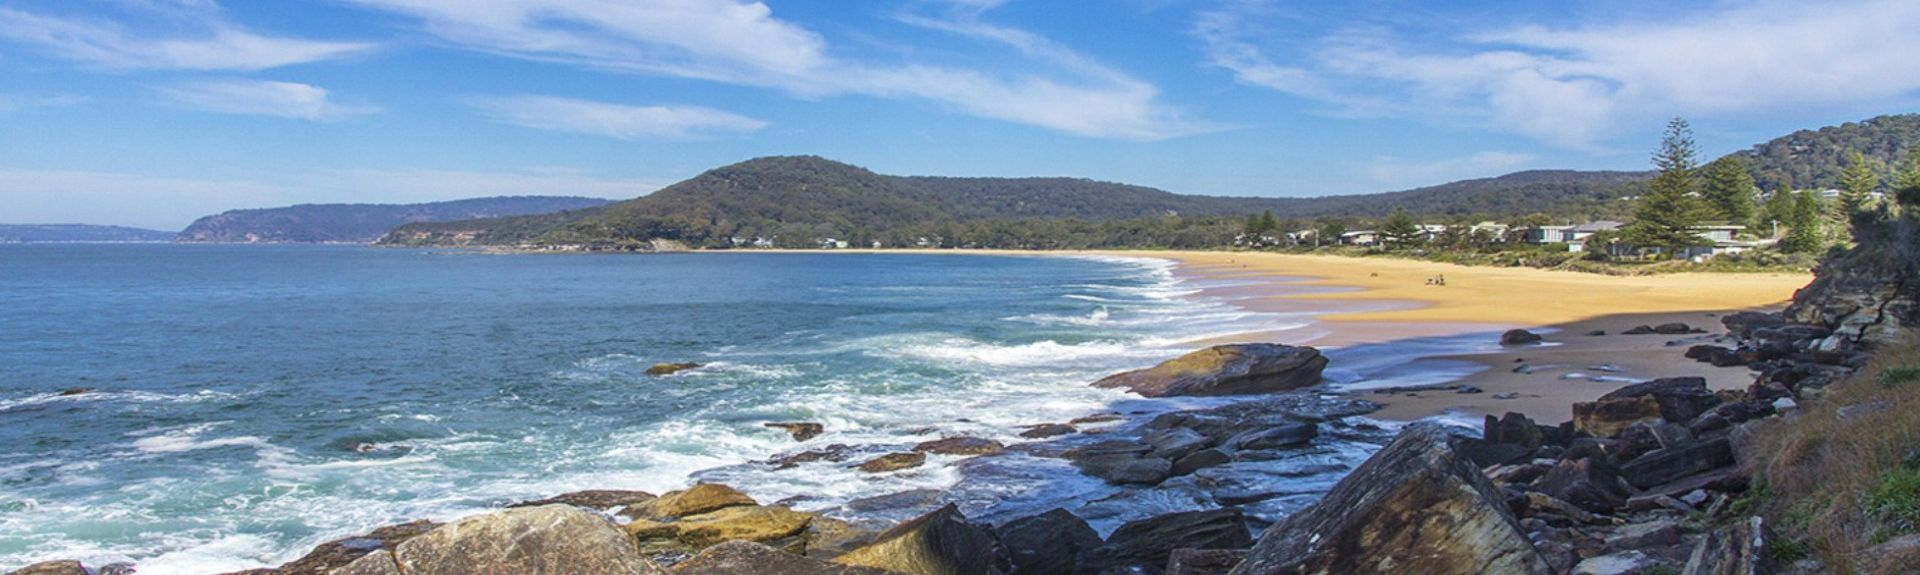 Woy Woy, NSW holiday accommodation: Houses & more | HomeAway